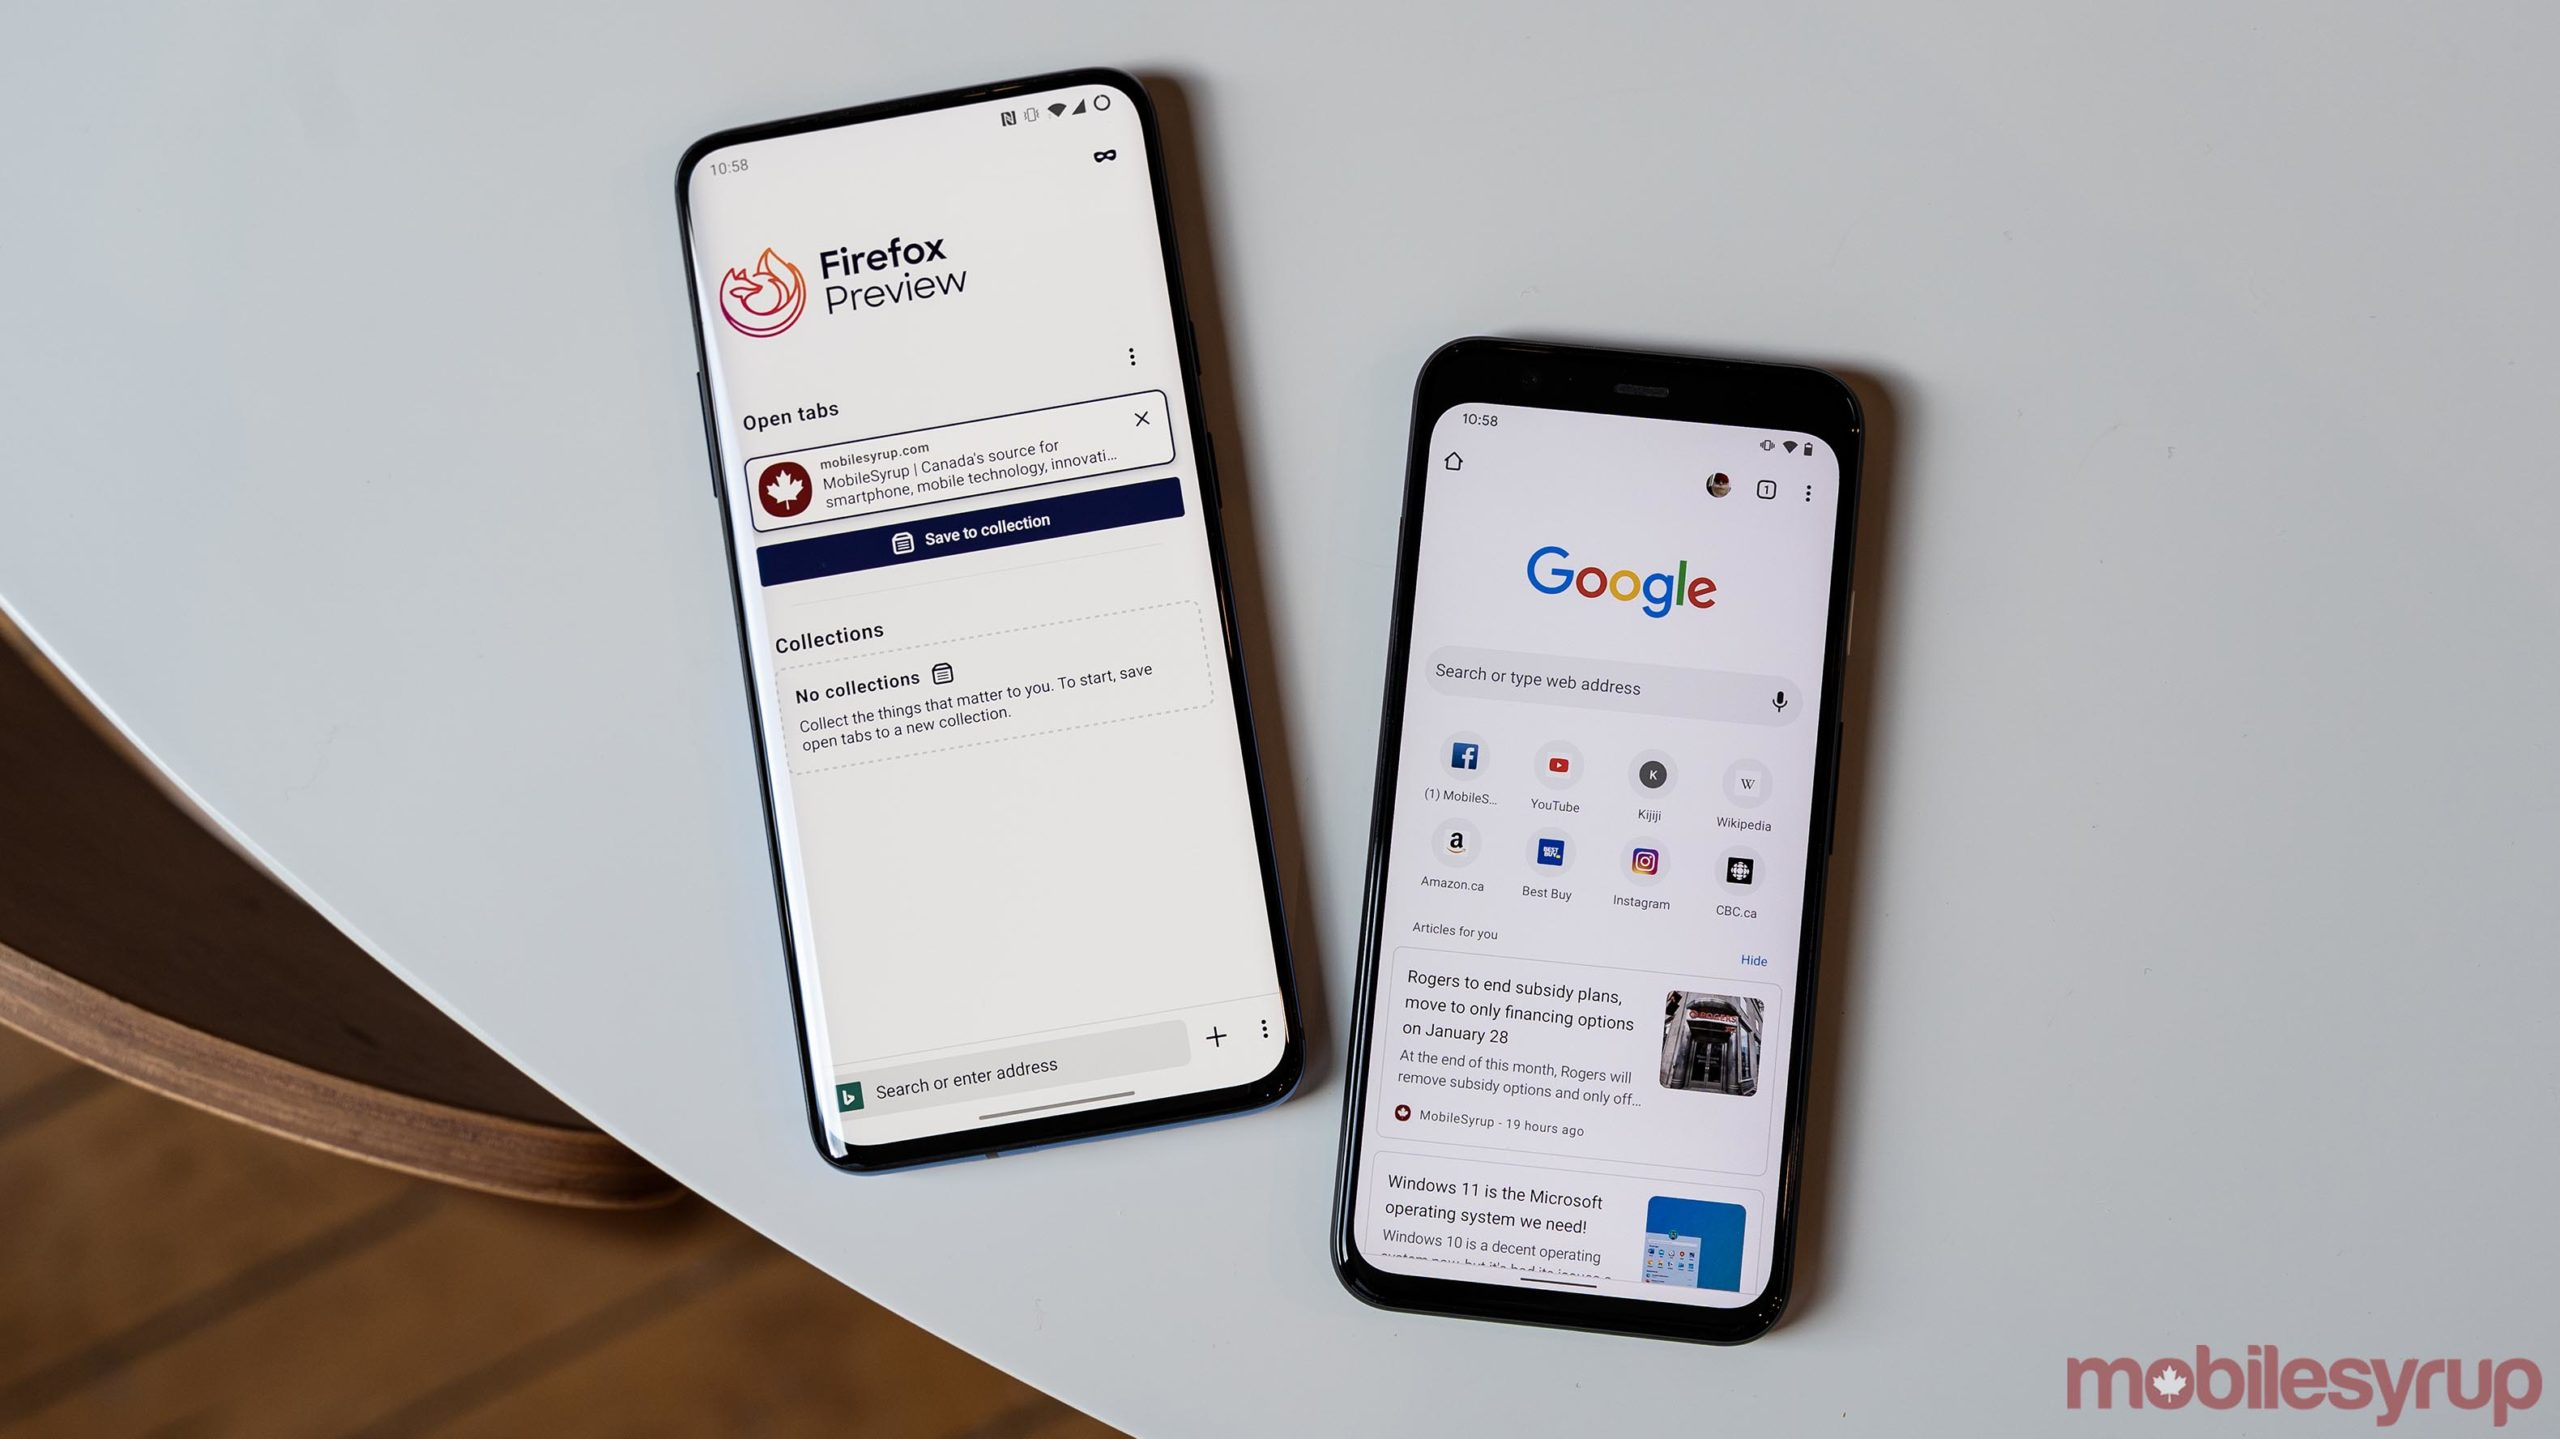 Firefox and Chrome on mobile